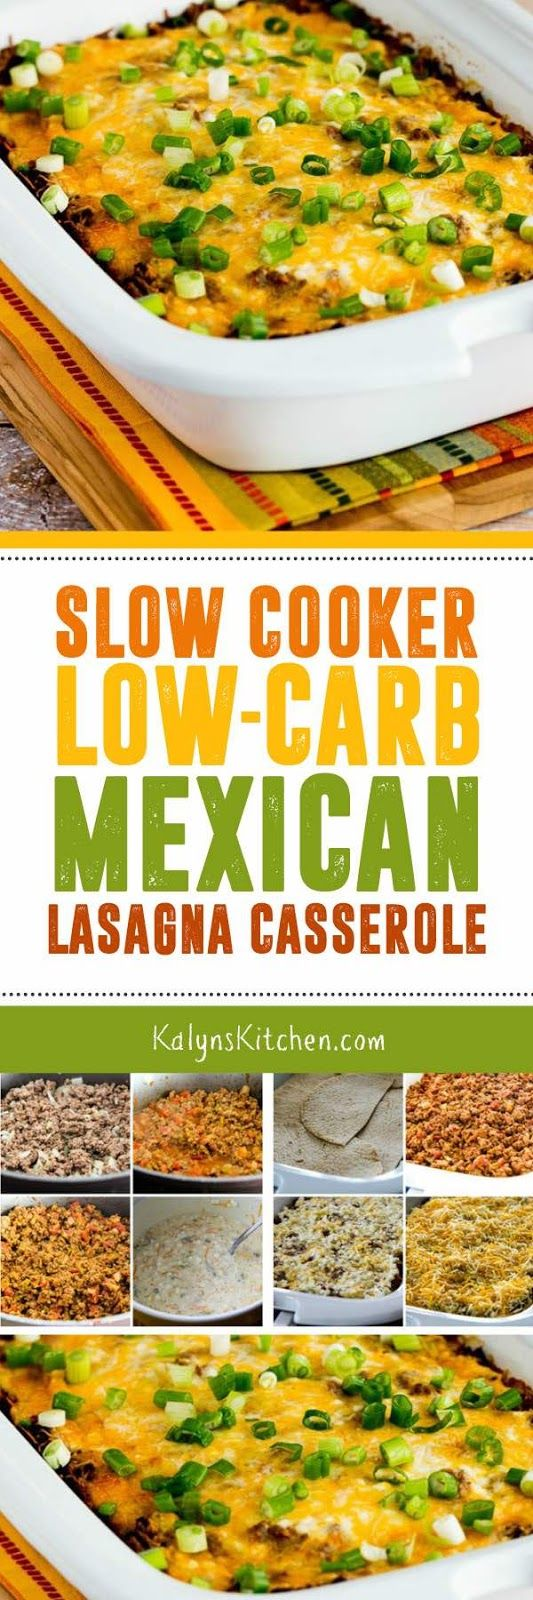 Use low-carb tortillas for this Slow Cooker Low-Carb Mexican Lasagna Casserole that's also low-glycemic and South Beach Diet Phase Two. You can make this in the Crock-Pot Casserole Crock slow cooker o